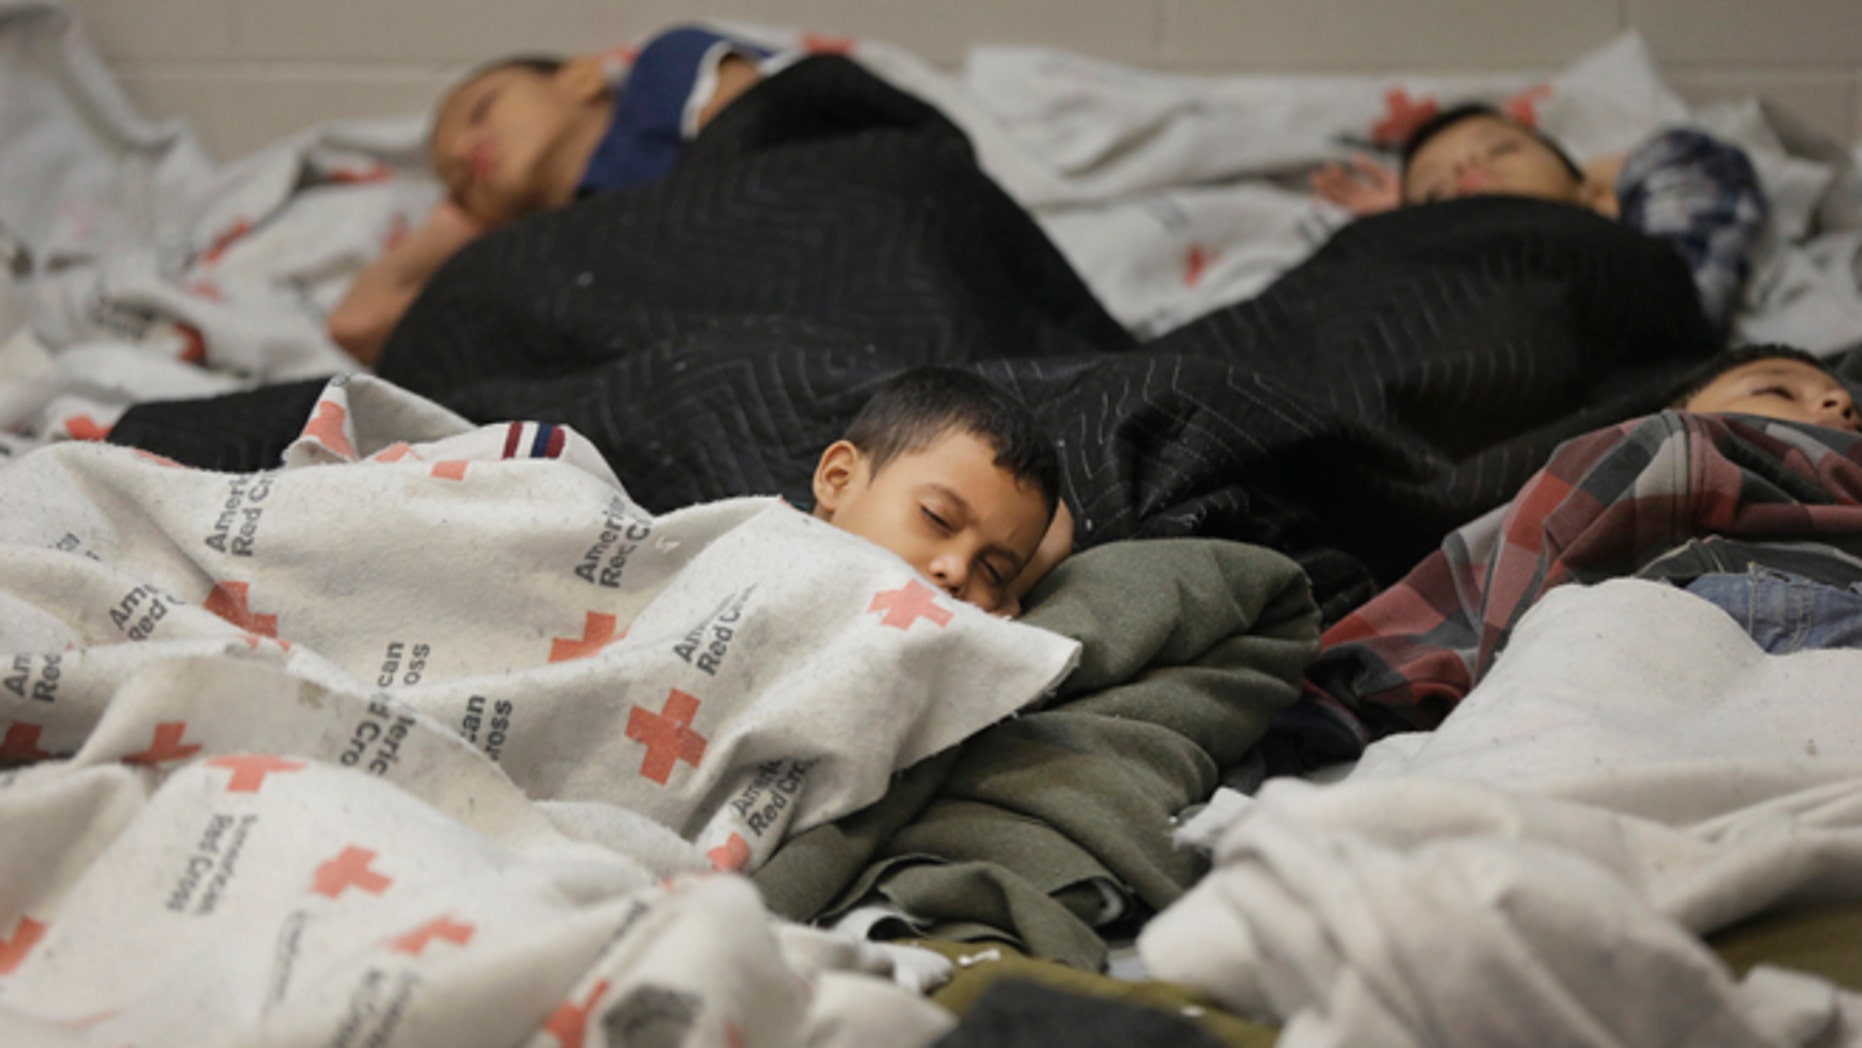 Detainees sleep in a holding cell at a U.S. Customs and Border Protection processing facility, in Brownsville, Texas June 18, 2014. CPB provided media tours June 18 of two locations in Brownsville and Nogales, Arizona that have been central to processing the more than 47,000 unaccompanied children who have entered the country illegally since Oct. 1.  REUTERS/Eric Gay/Pool  (UNITED STATES - Tags: CRIME LAW POLITICS SOCIETY) - RTR3UI3Q